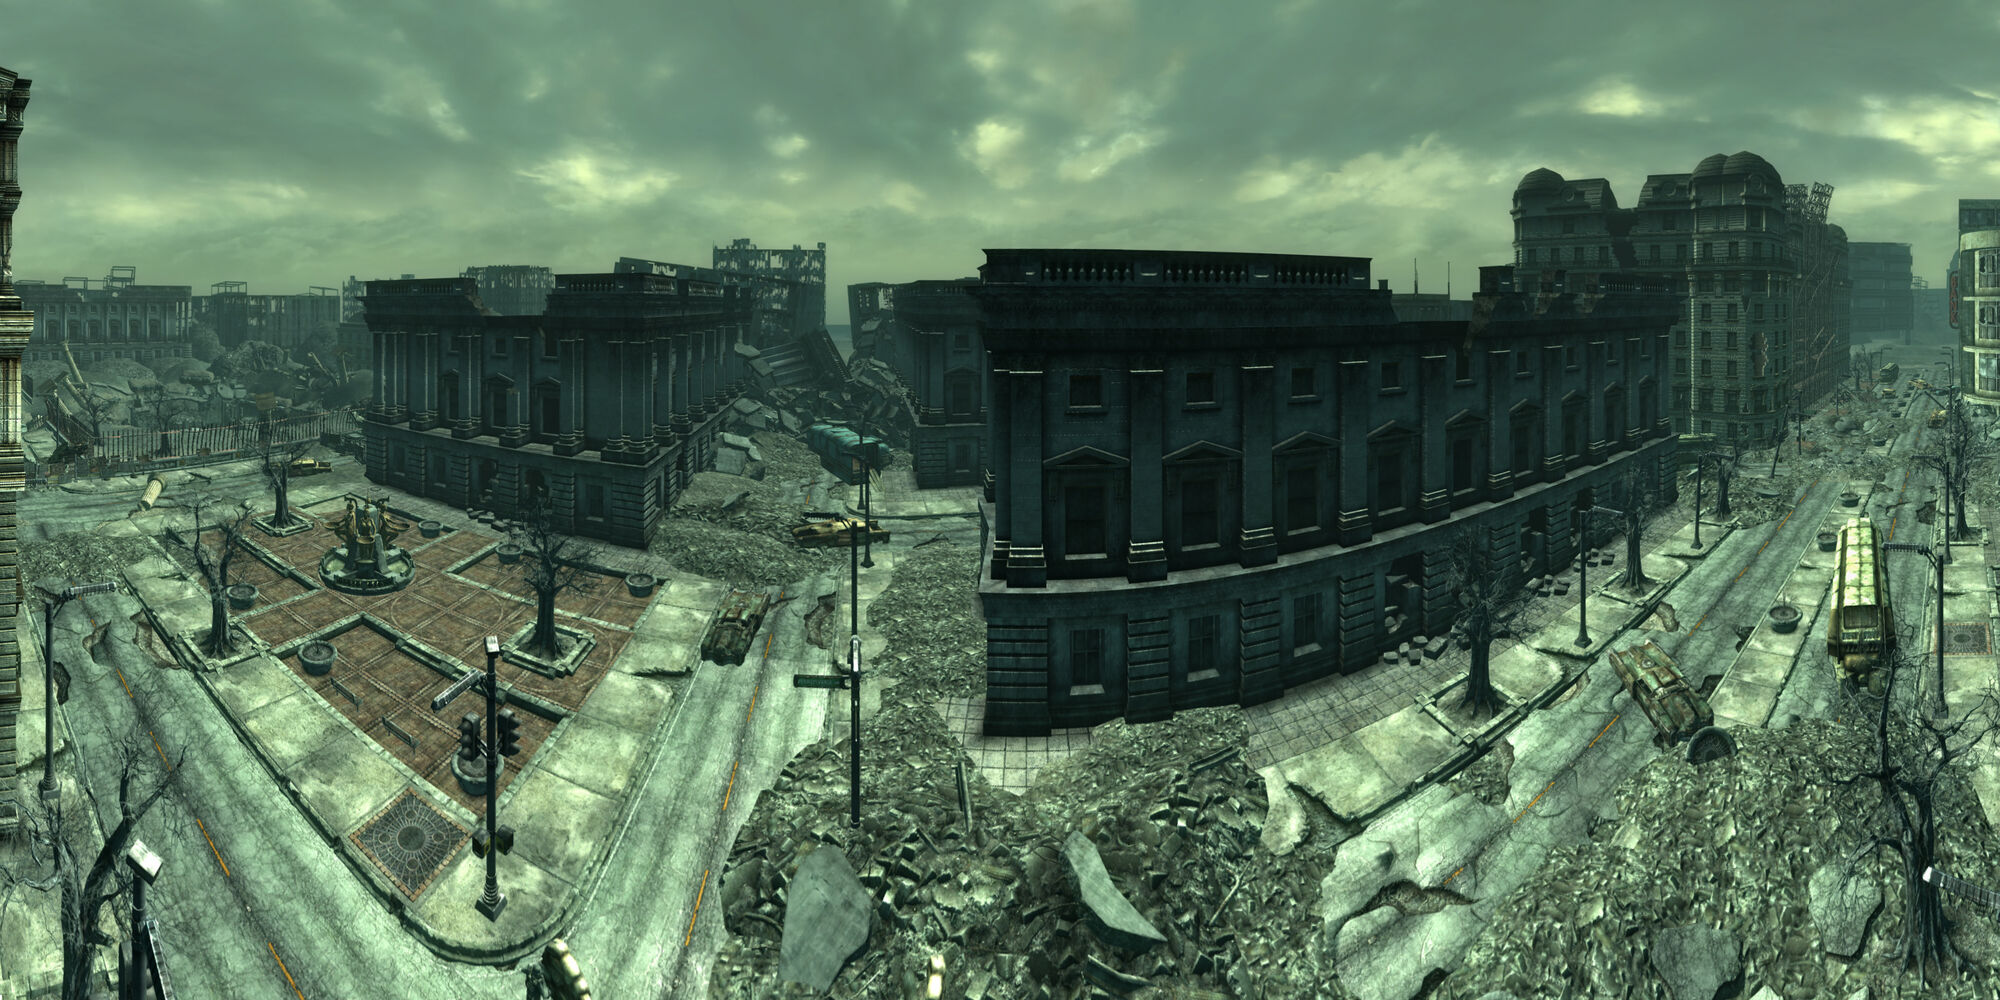 2000?cb=20141204194723 pennsylvania avenue fallout wiki fandom powered by wikia  at aneh.co